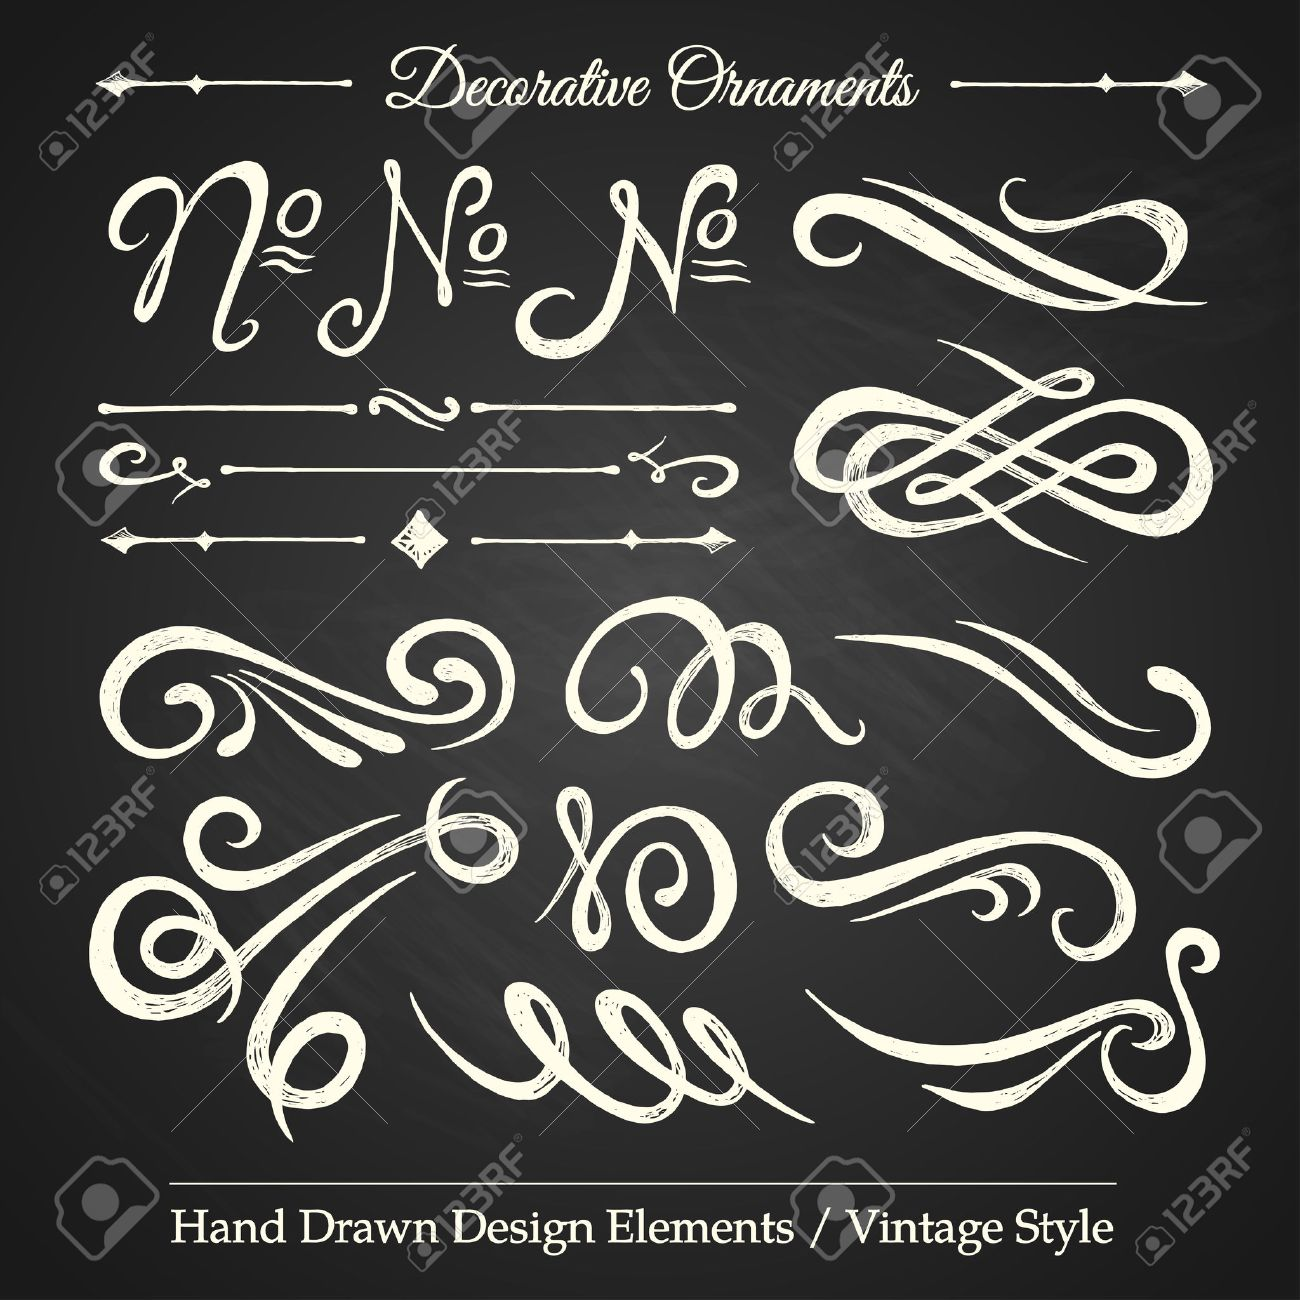 Vintage style ornaments - Decorative Ornaments Hand Drawn Design Elements Vintage Style On Chalkboard Stock Vector 26764404